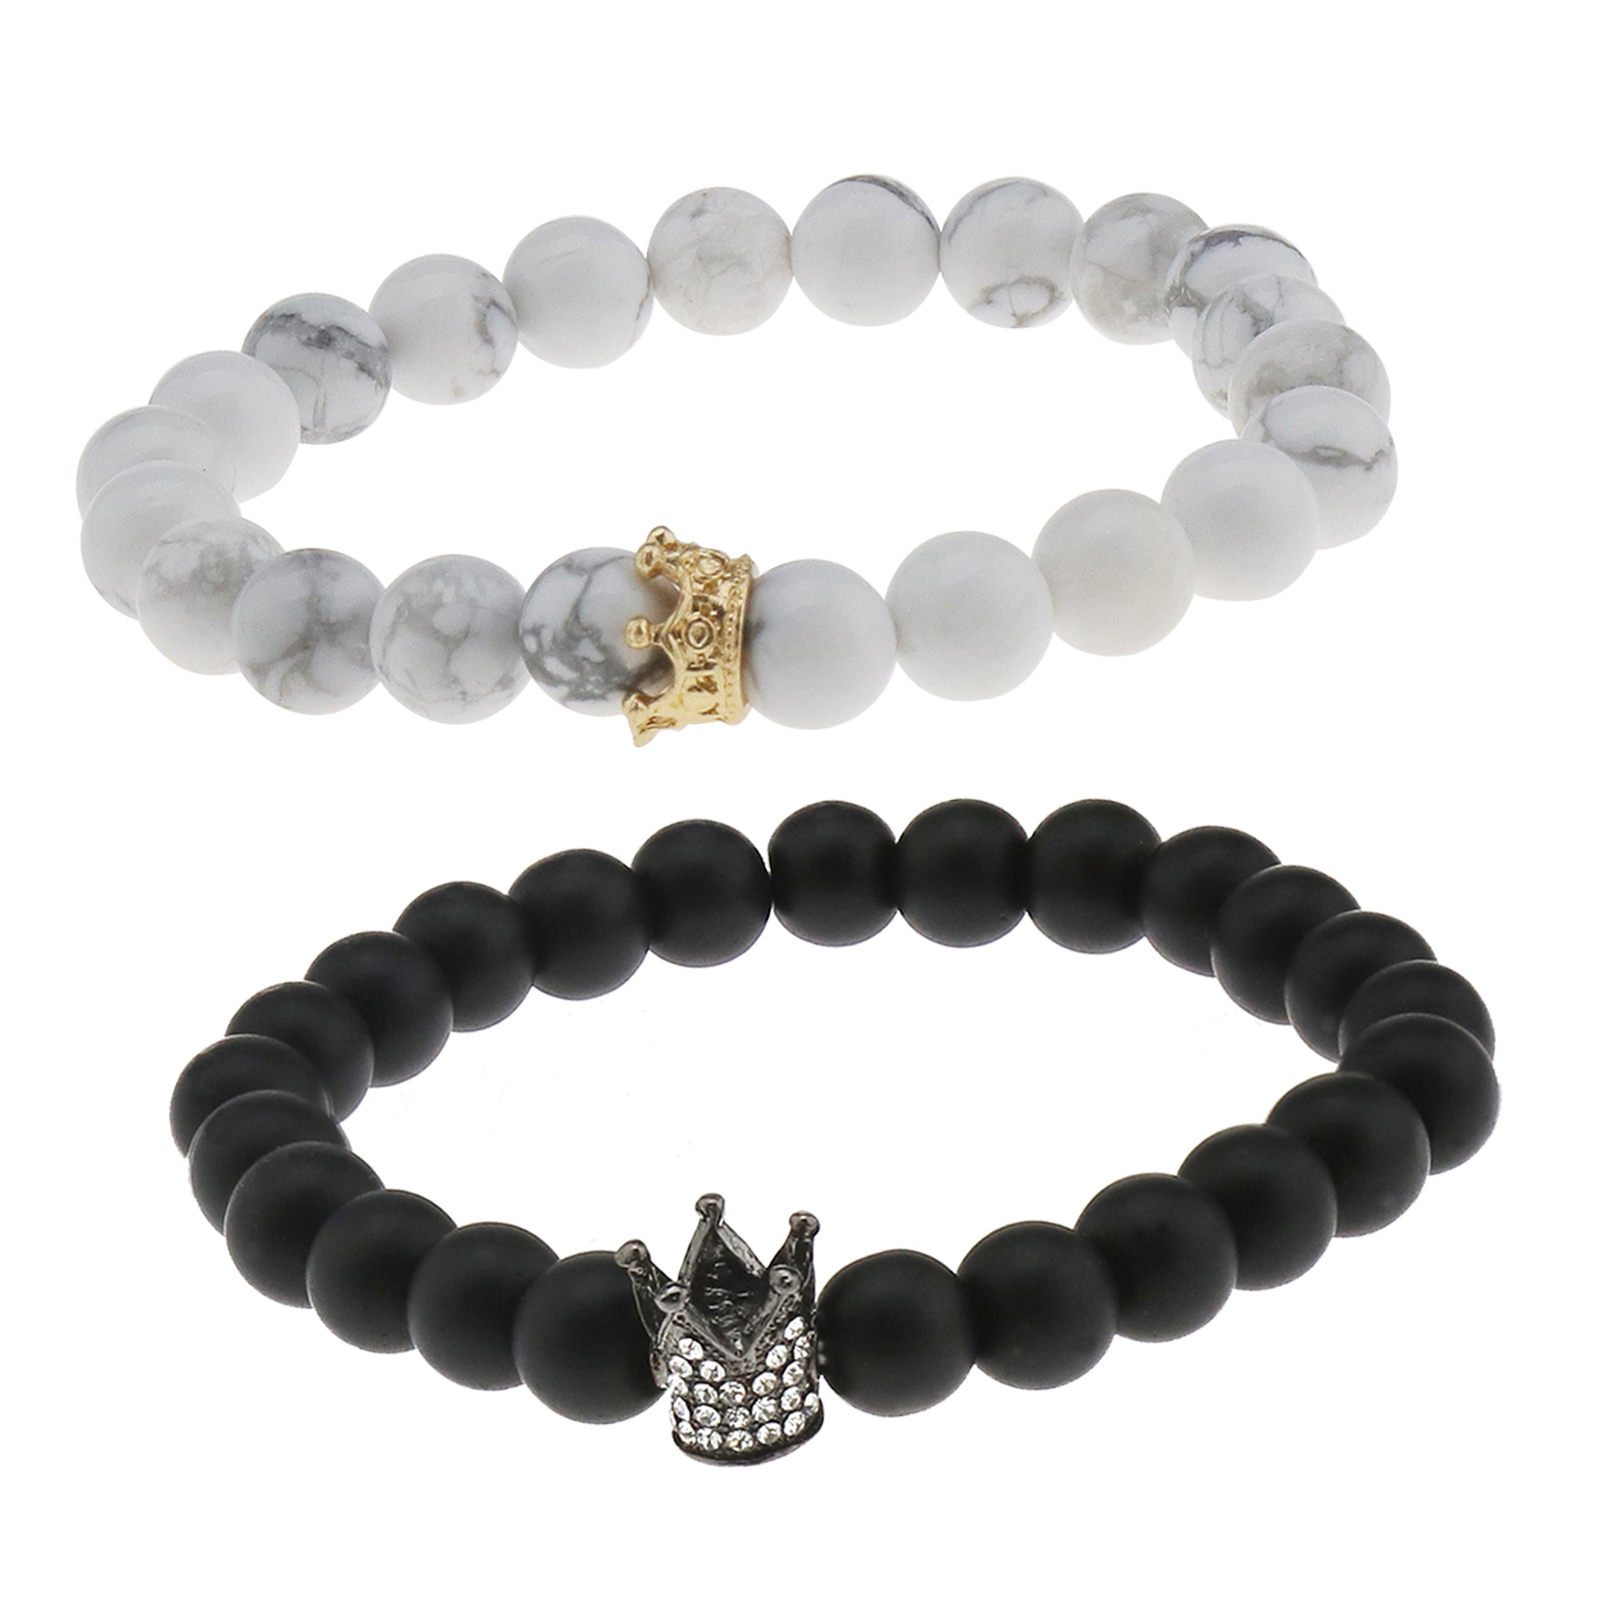 a390f358d4 2Pcs Couple King Queen Crown Bracelets His And Her Friendship Beads Bracelet  8mm